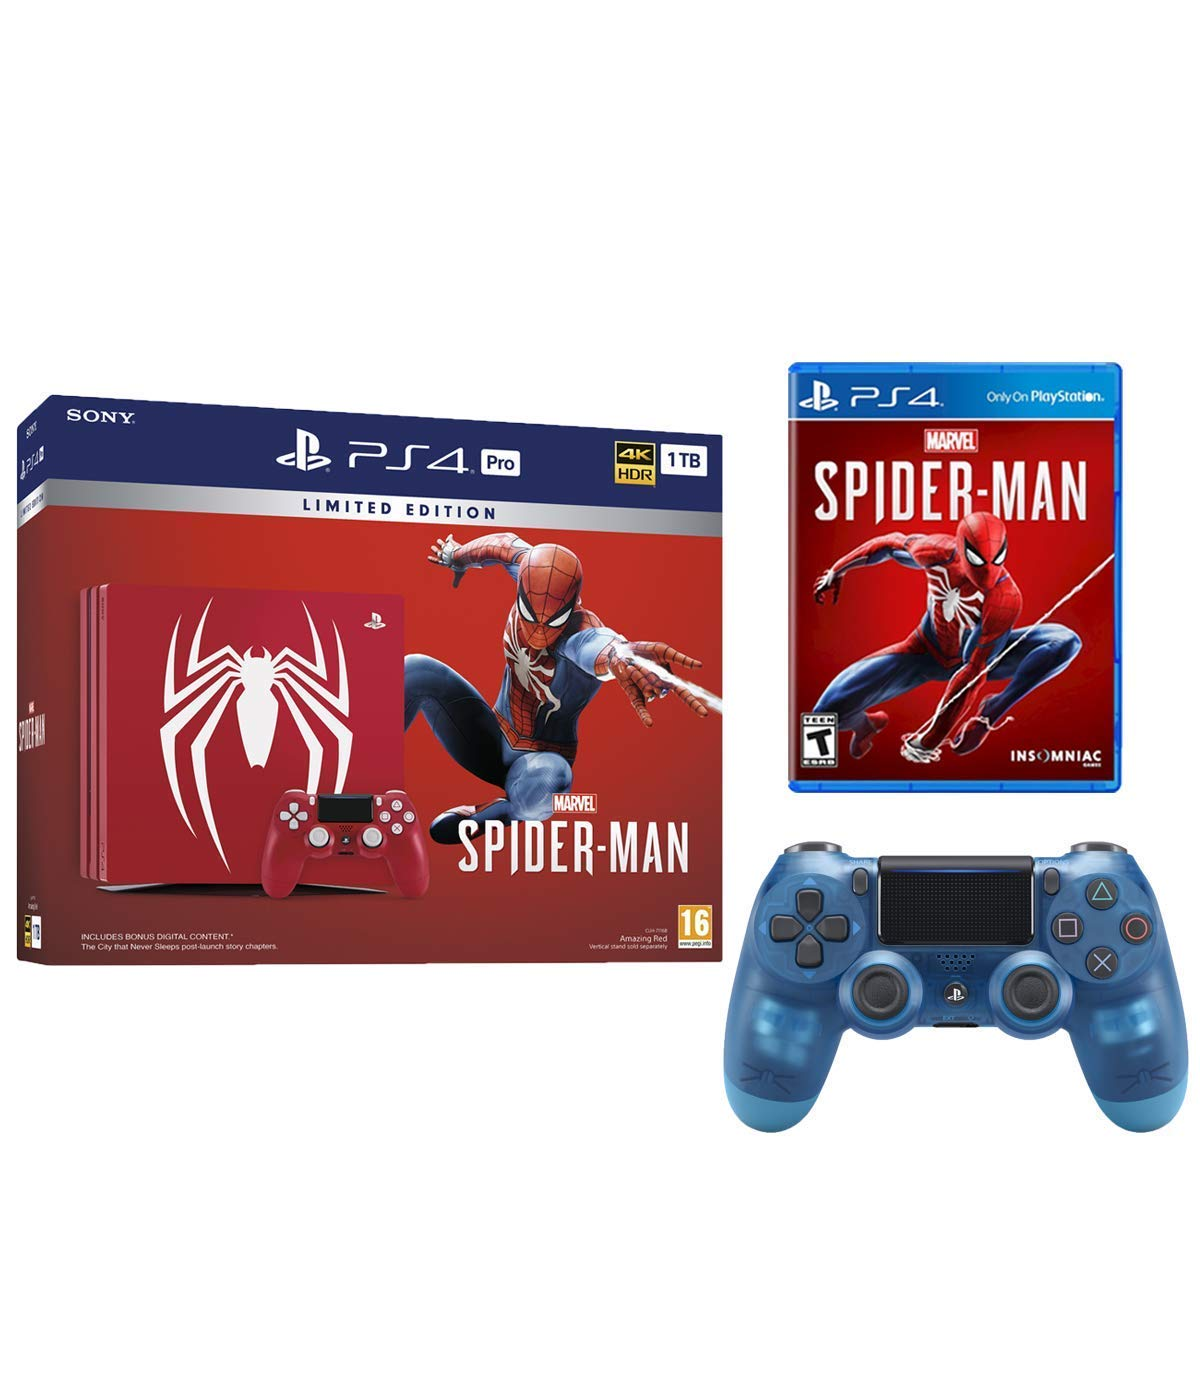 Playstation 4 Pro Marvel's Spider-Man Limited Edition Amazing Red 1TB Console with Extra Crystal Blue... by Sony